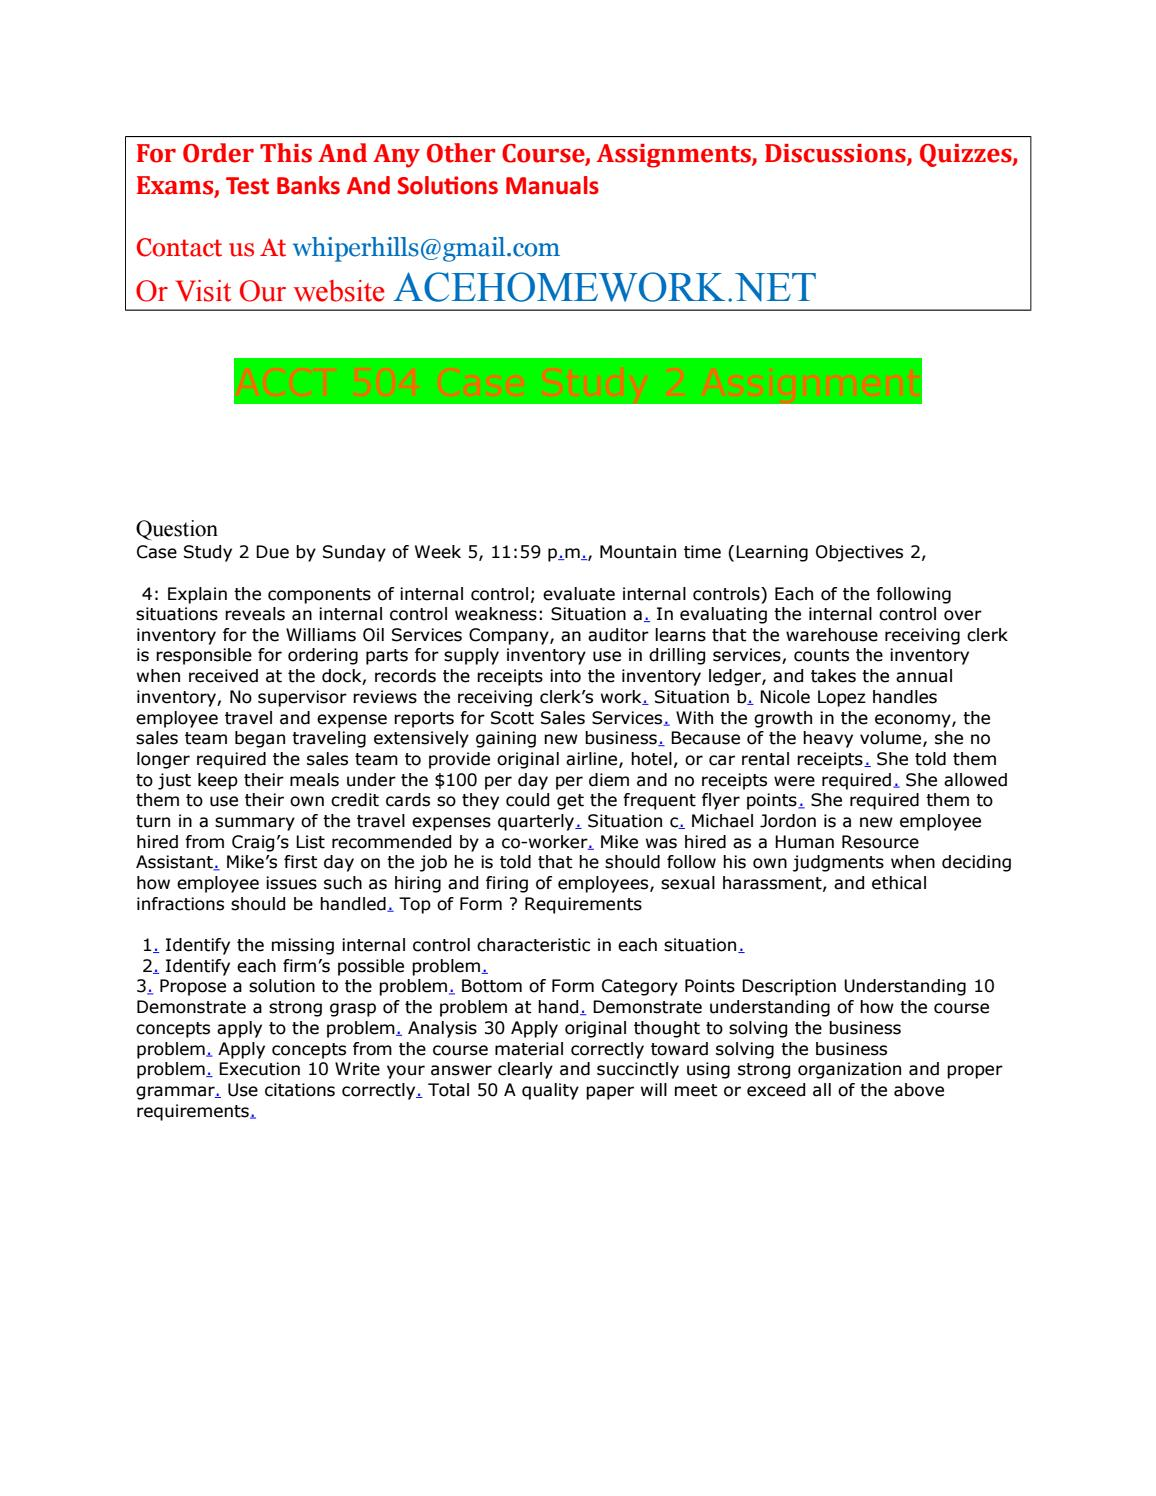 Design Your Own Log Home Software Acct 504 Case Study 2 Assignment By Acehome Net Issuu